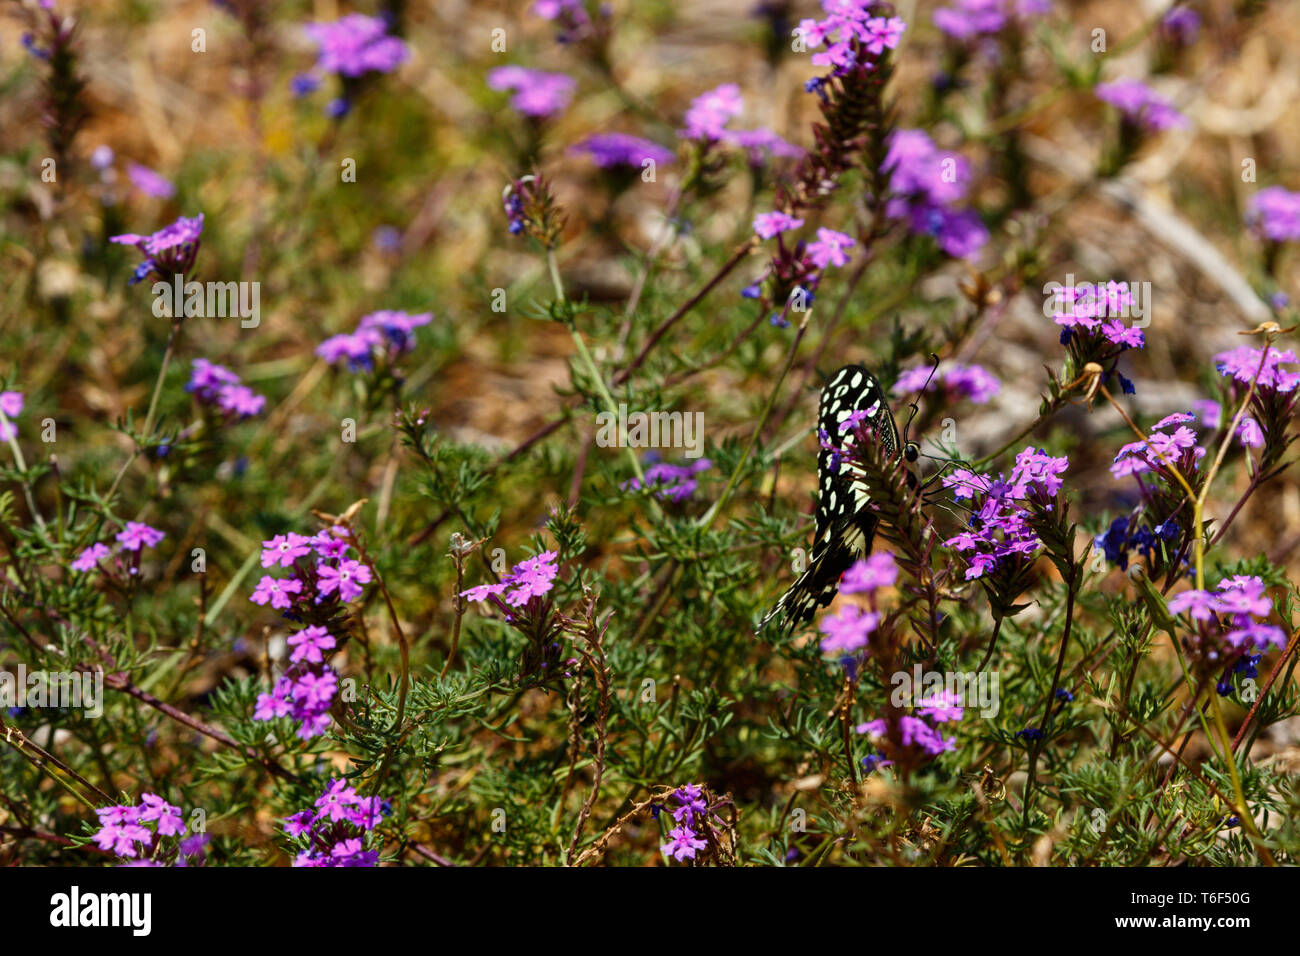 Black and white Butterfly flapping his wings in the field - Stock Image